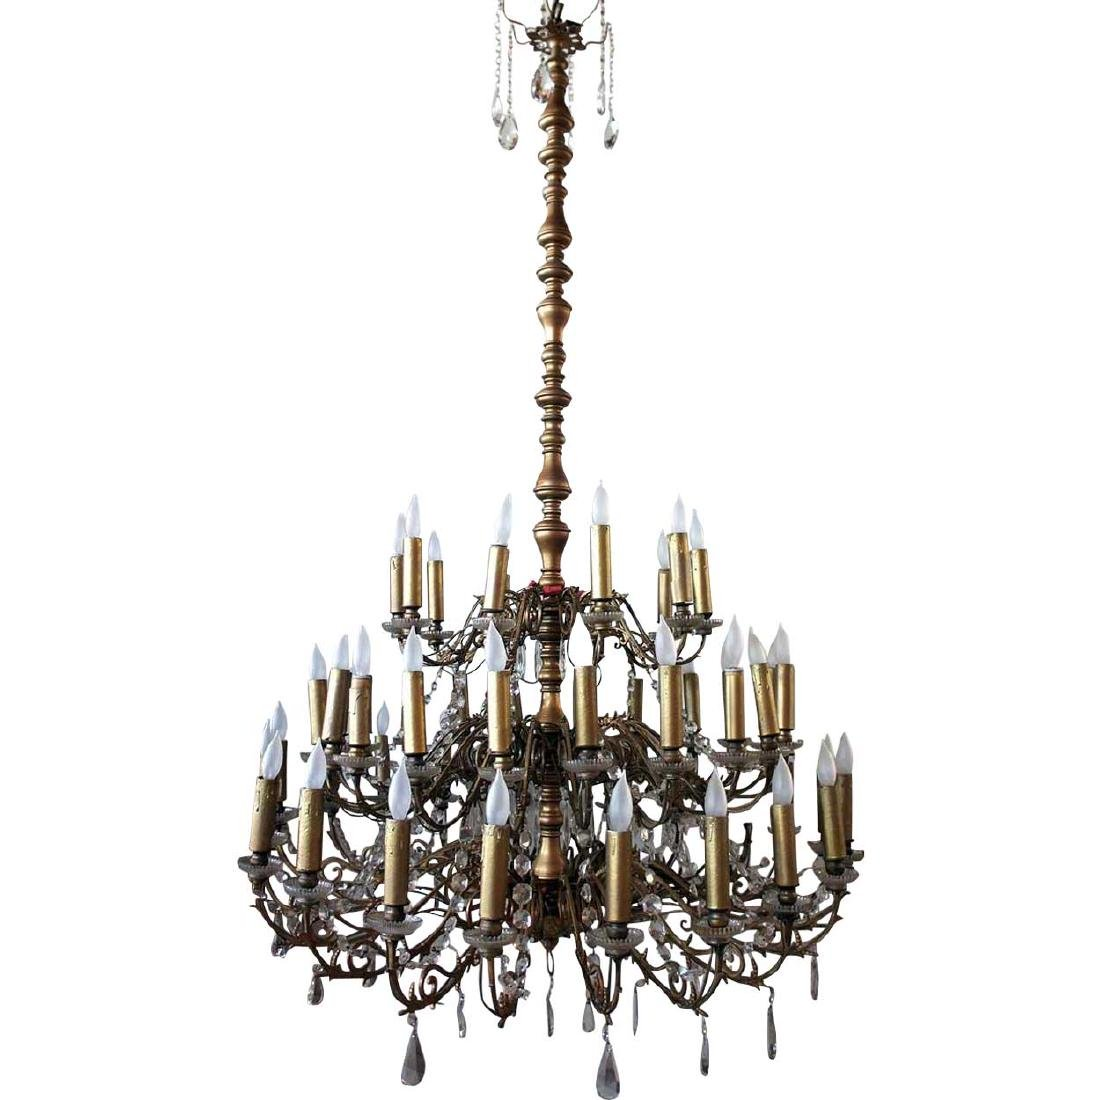 Large French Brass and Crystal 50-Light Chandelier